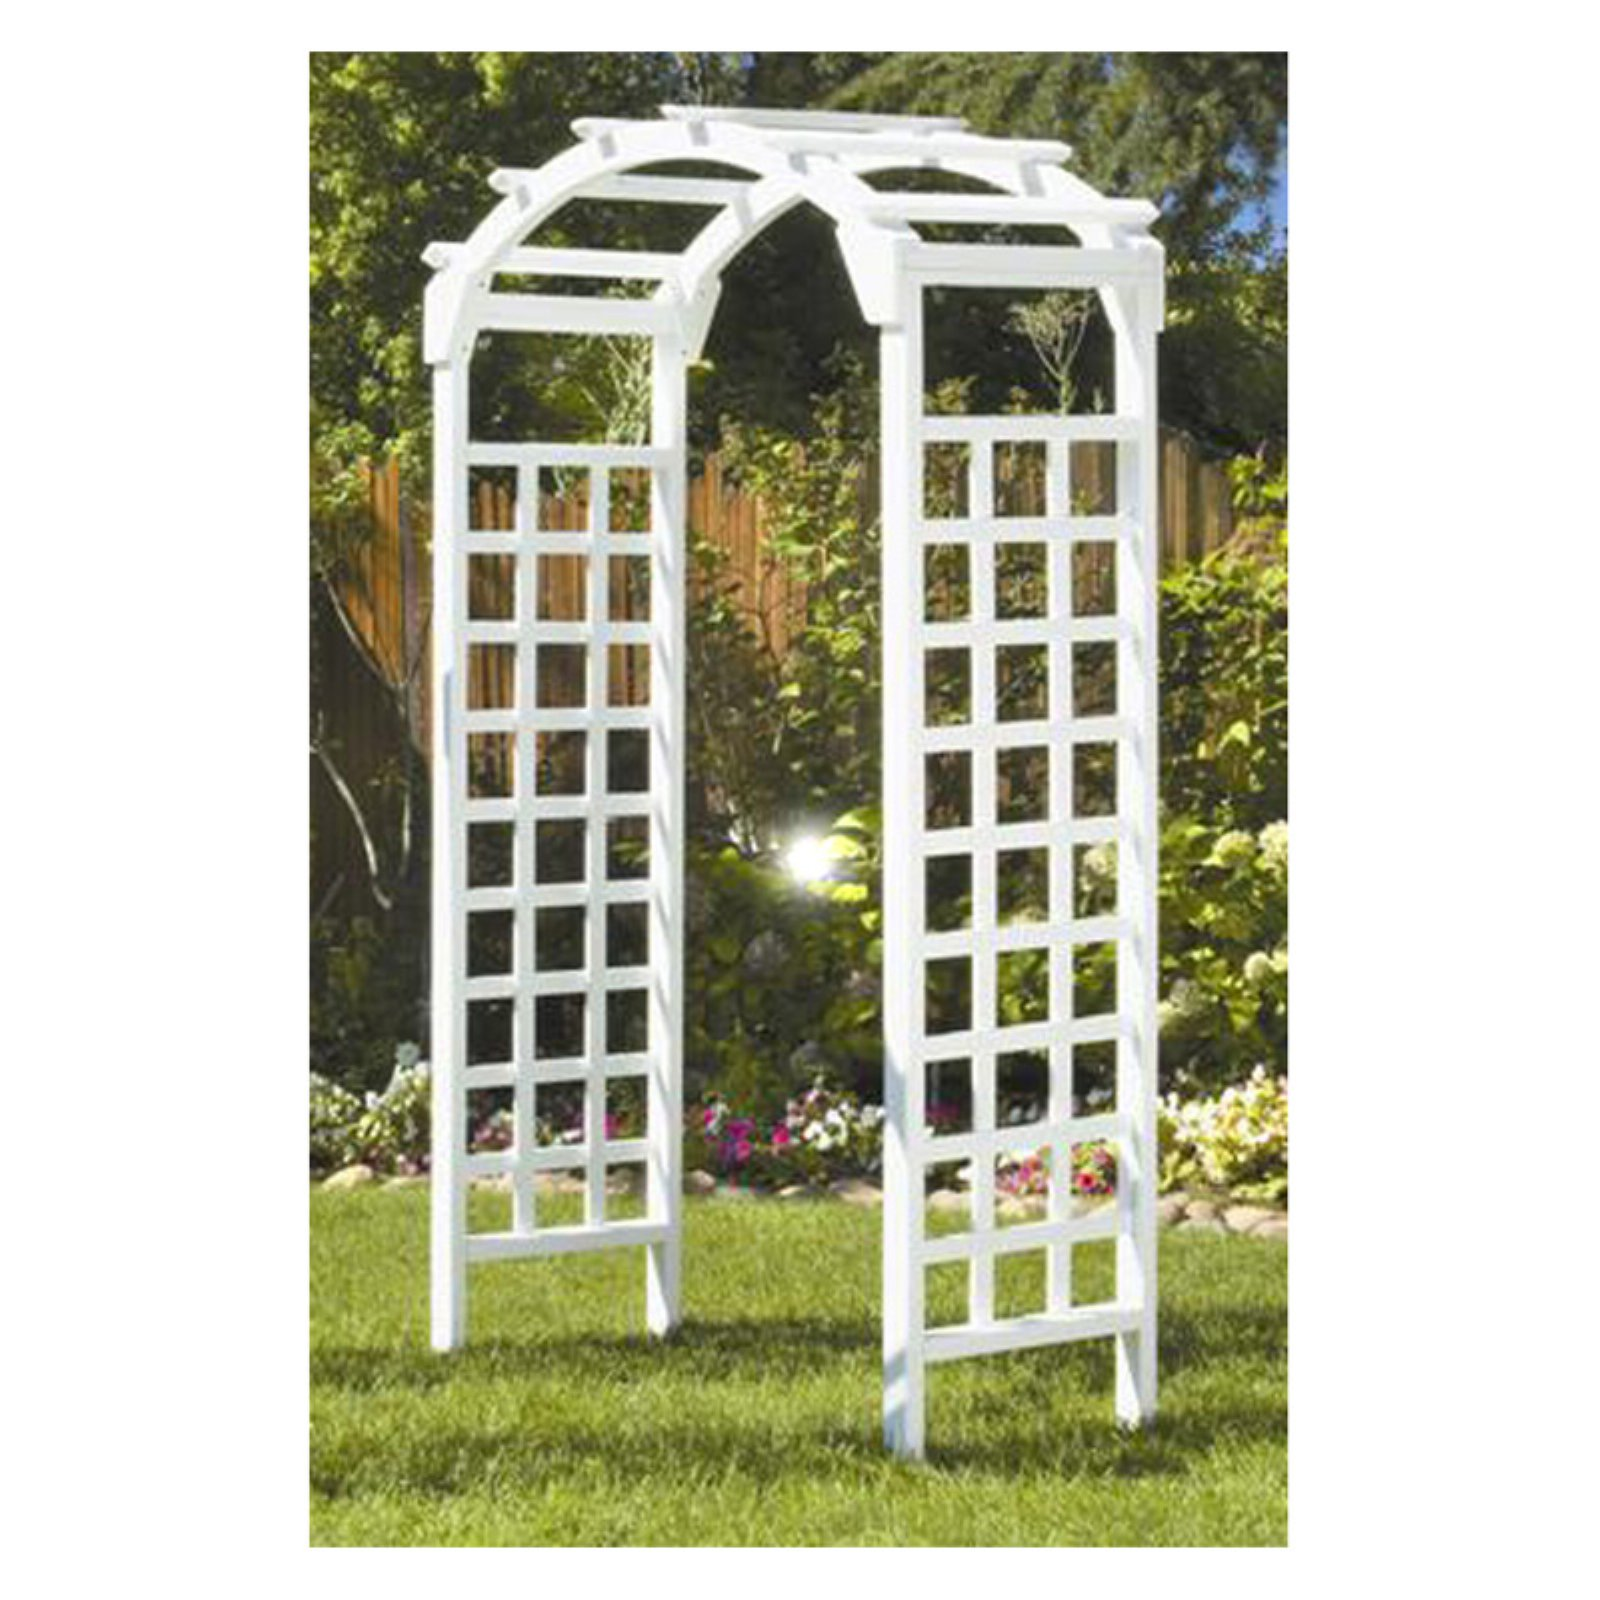 Greenstone White Arch 7 ft. Wood Arbor